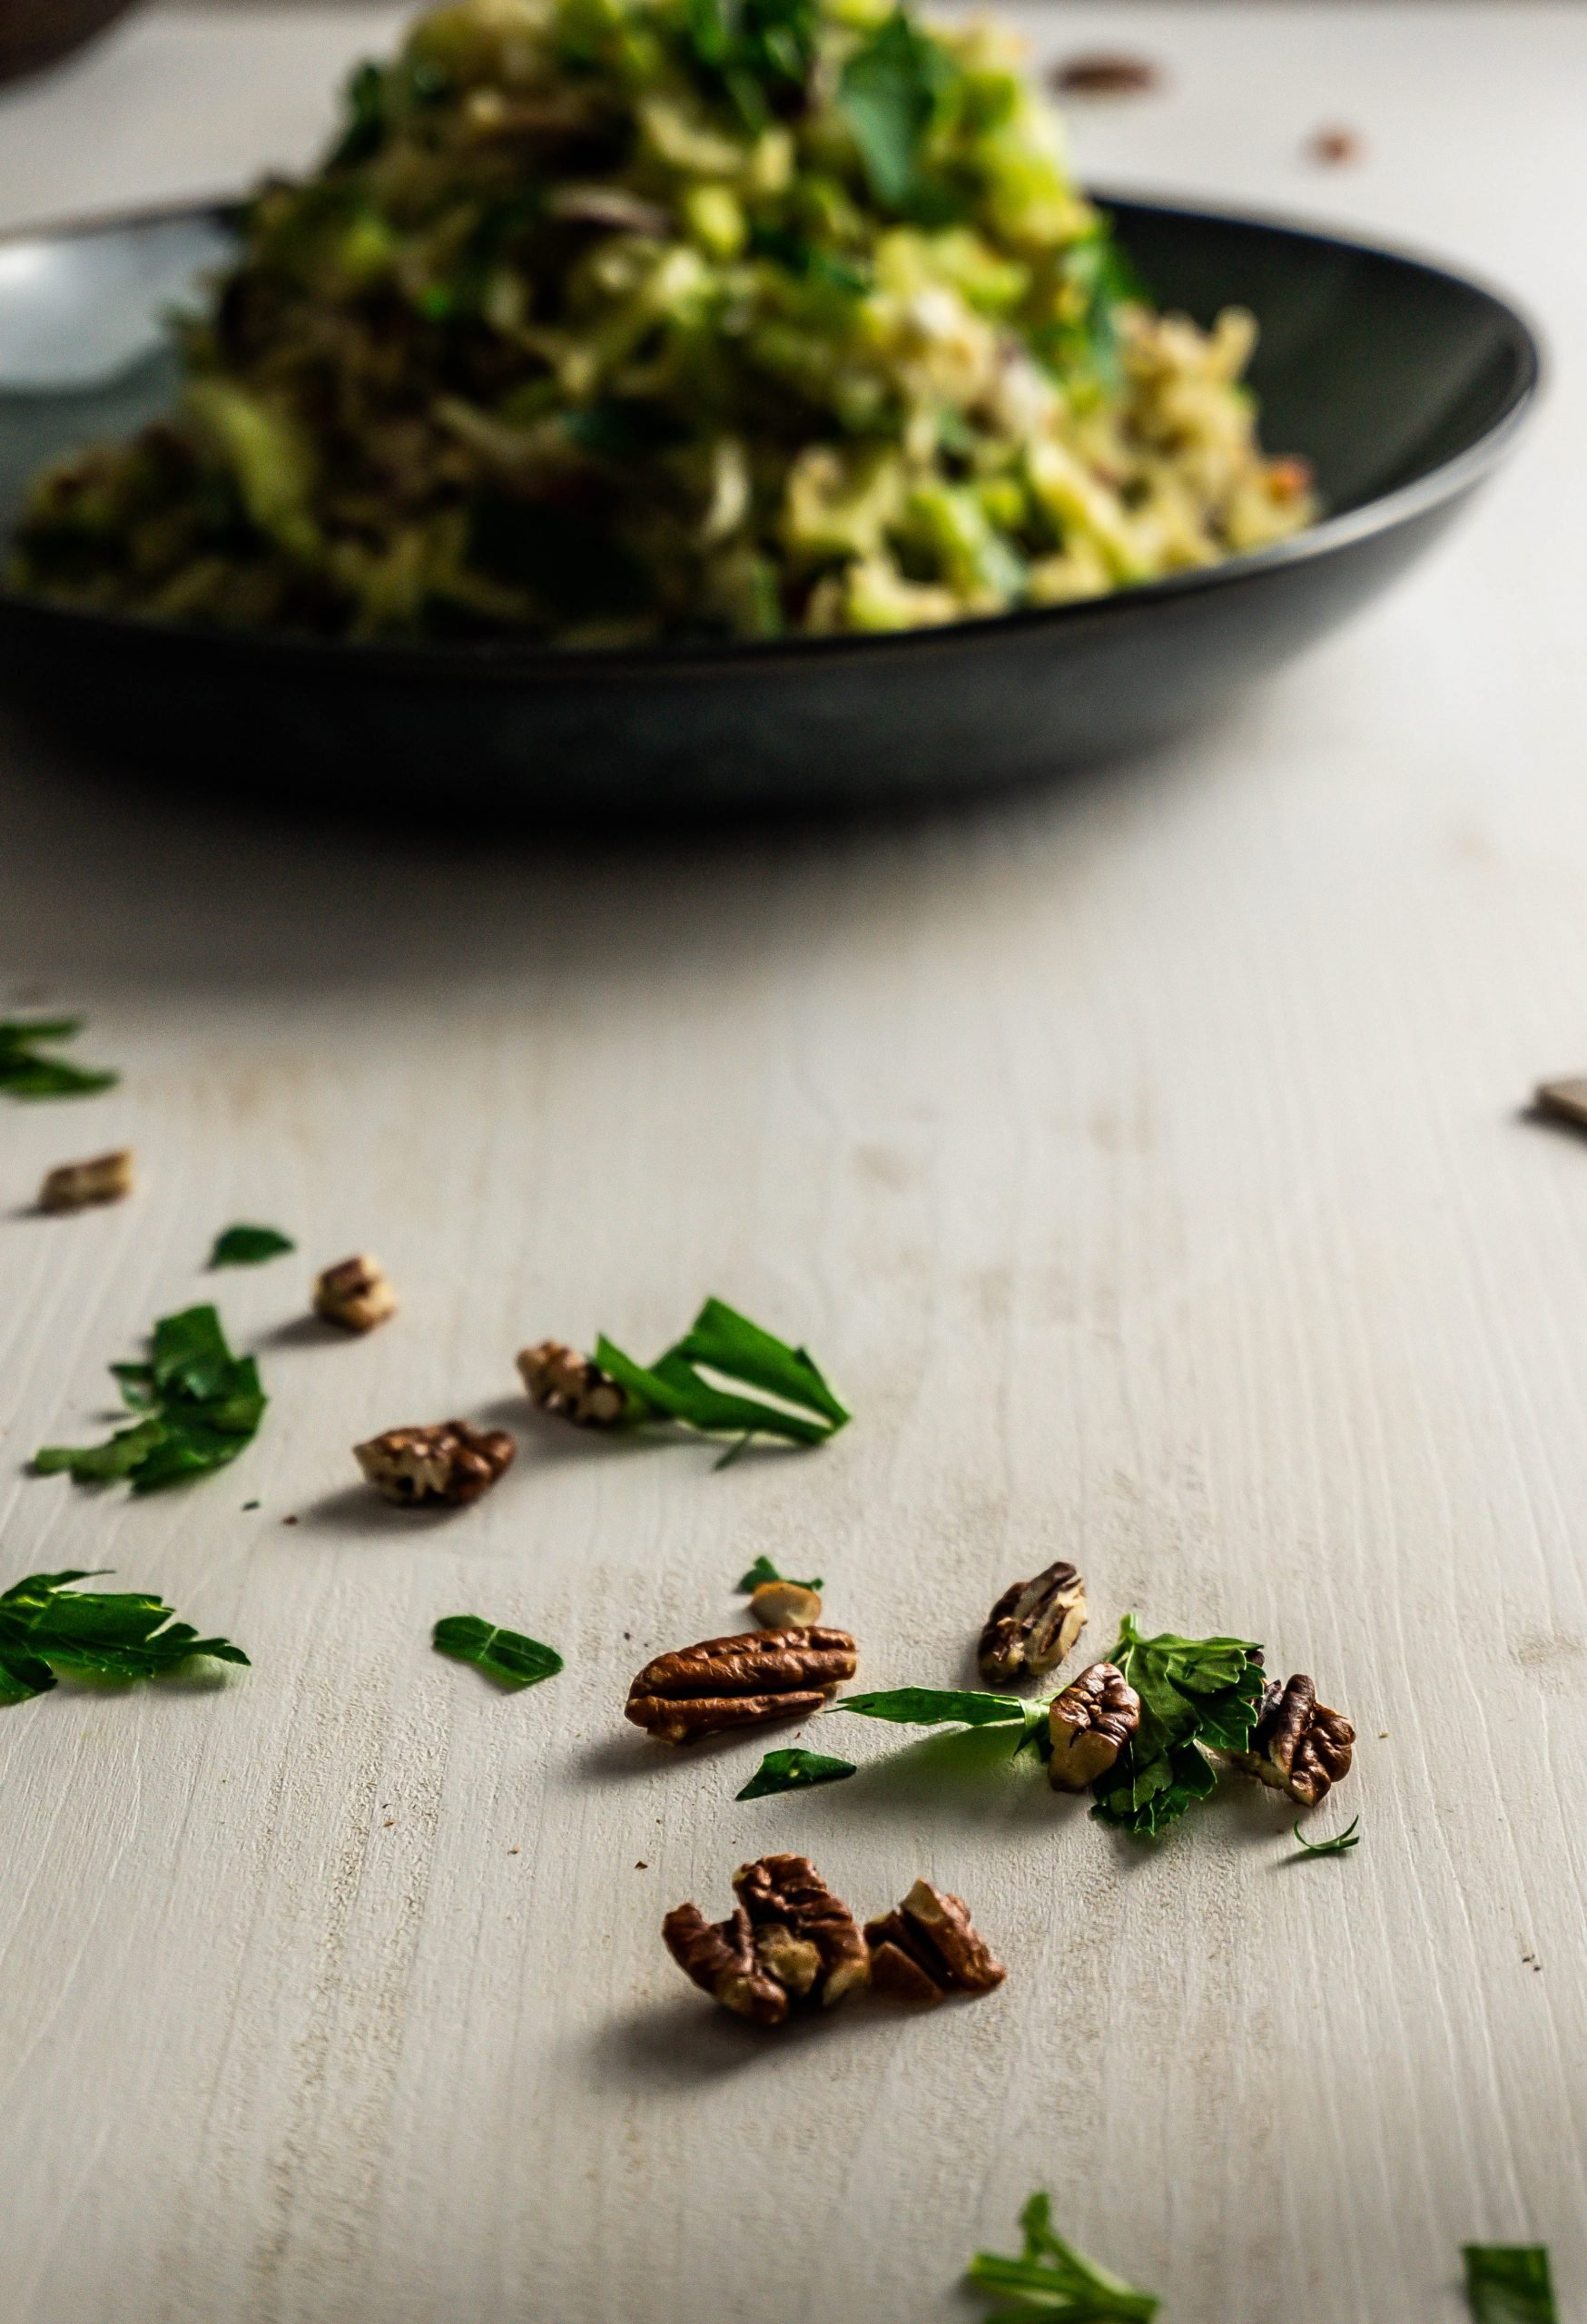 Chopped parsley and pecan nuts on a white surface with my mother-in-law's apple celery salad visible in the background